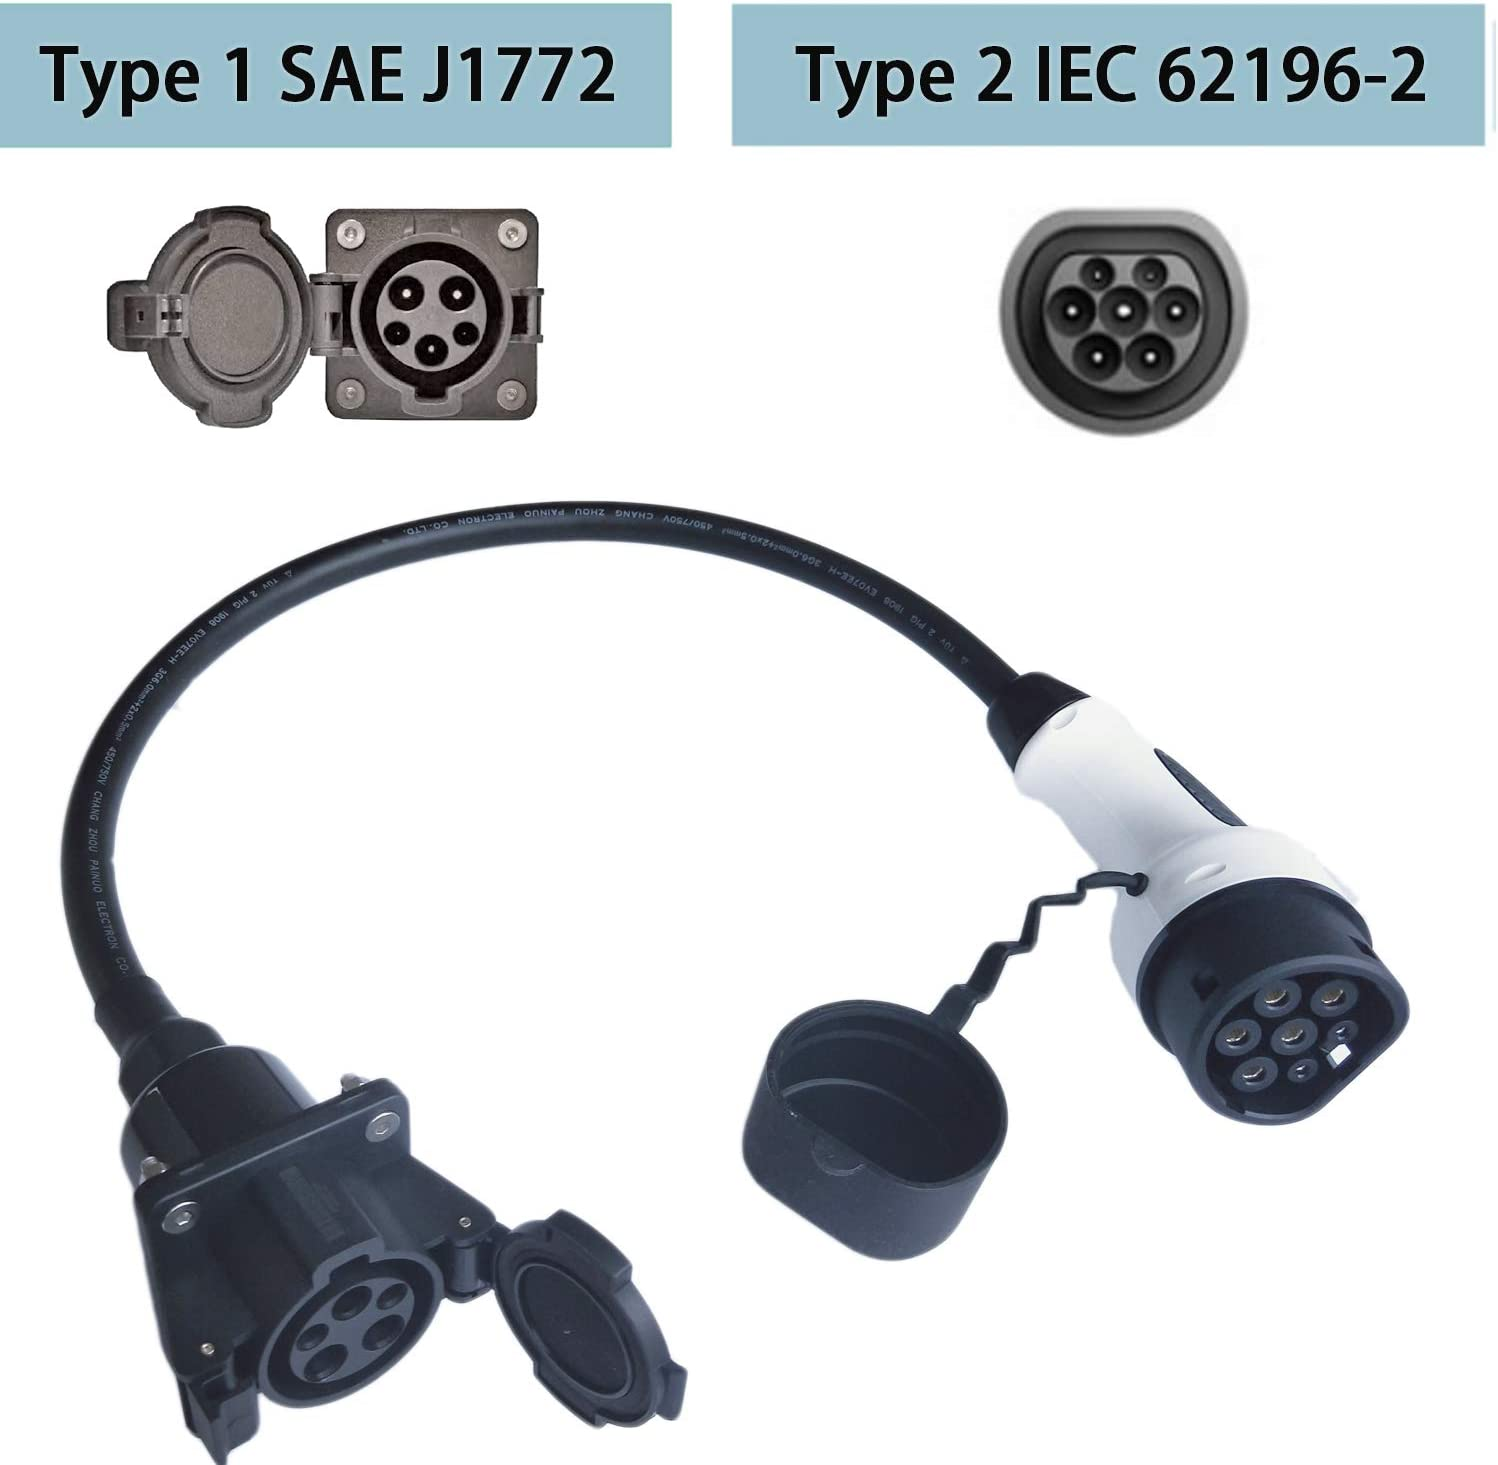 K.H.O.N.S Mennekes Type 2 Plug. 0.5M Black cable EV Adapter Type 1 To Type 2 Electric Car Charging Cable 32A EV Adapter For Type 2 EVS